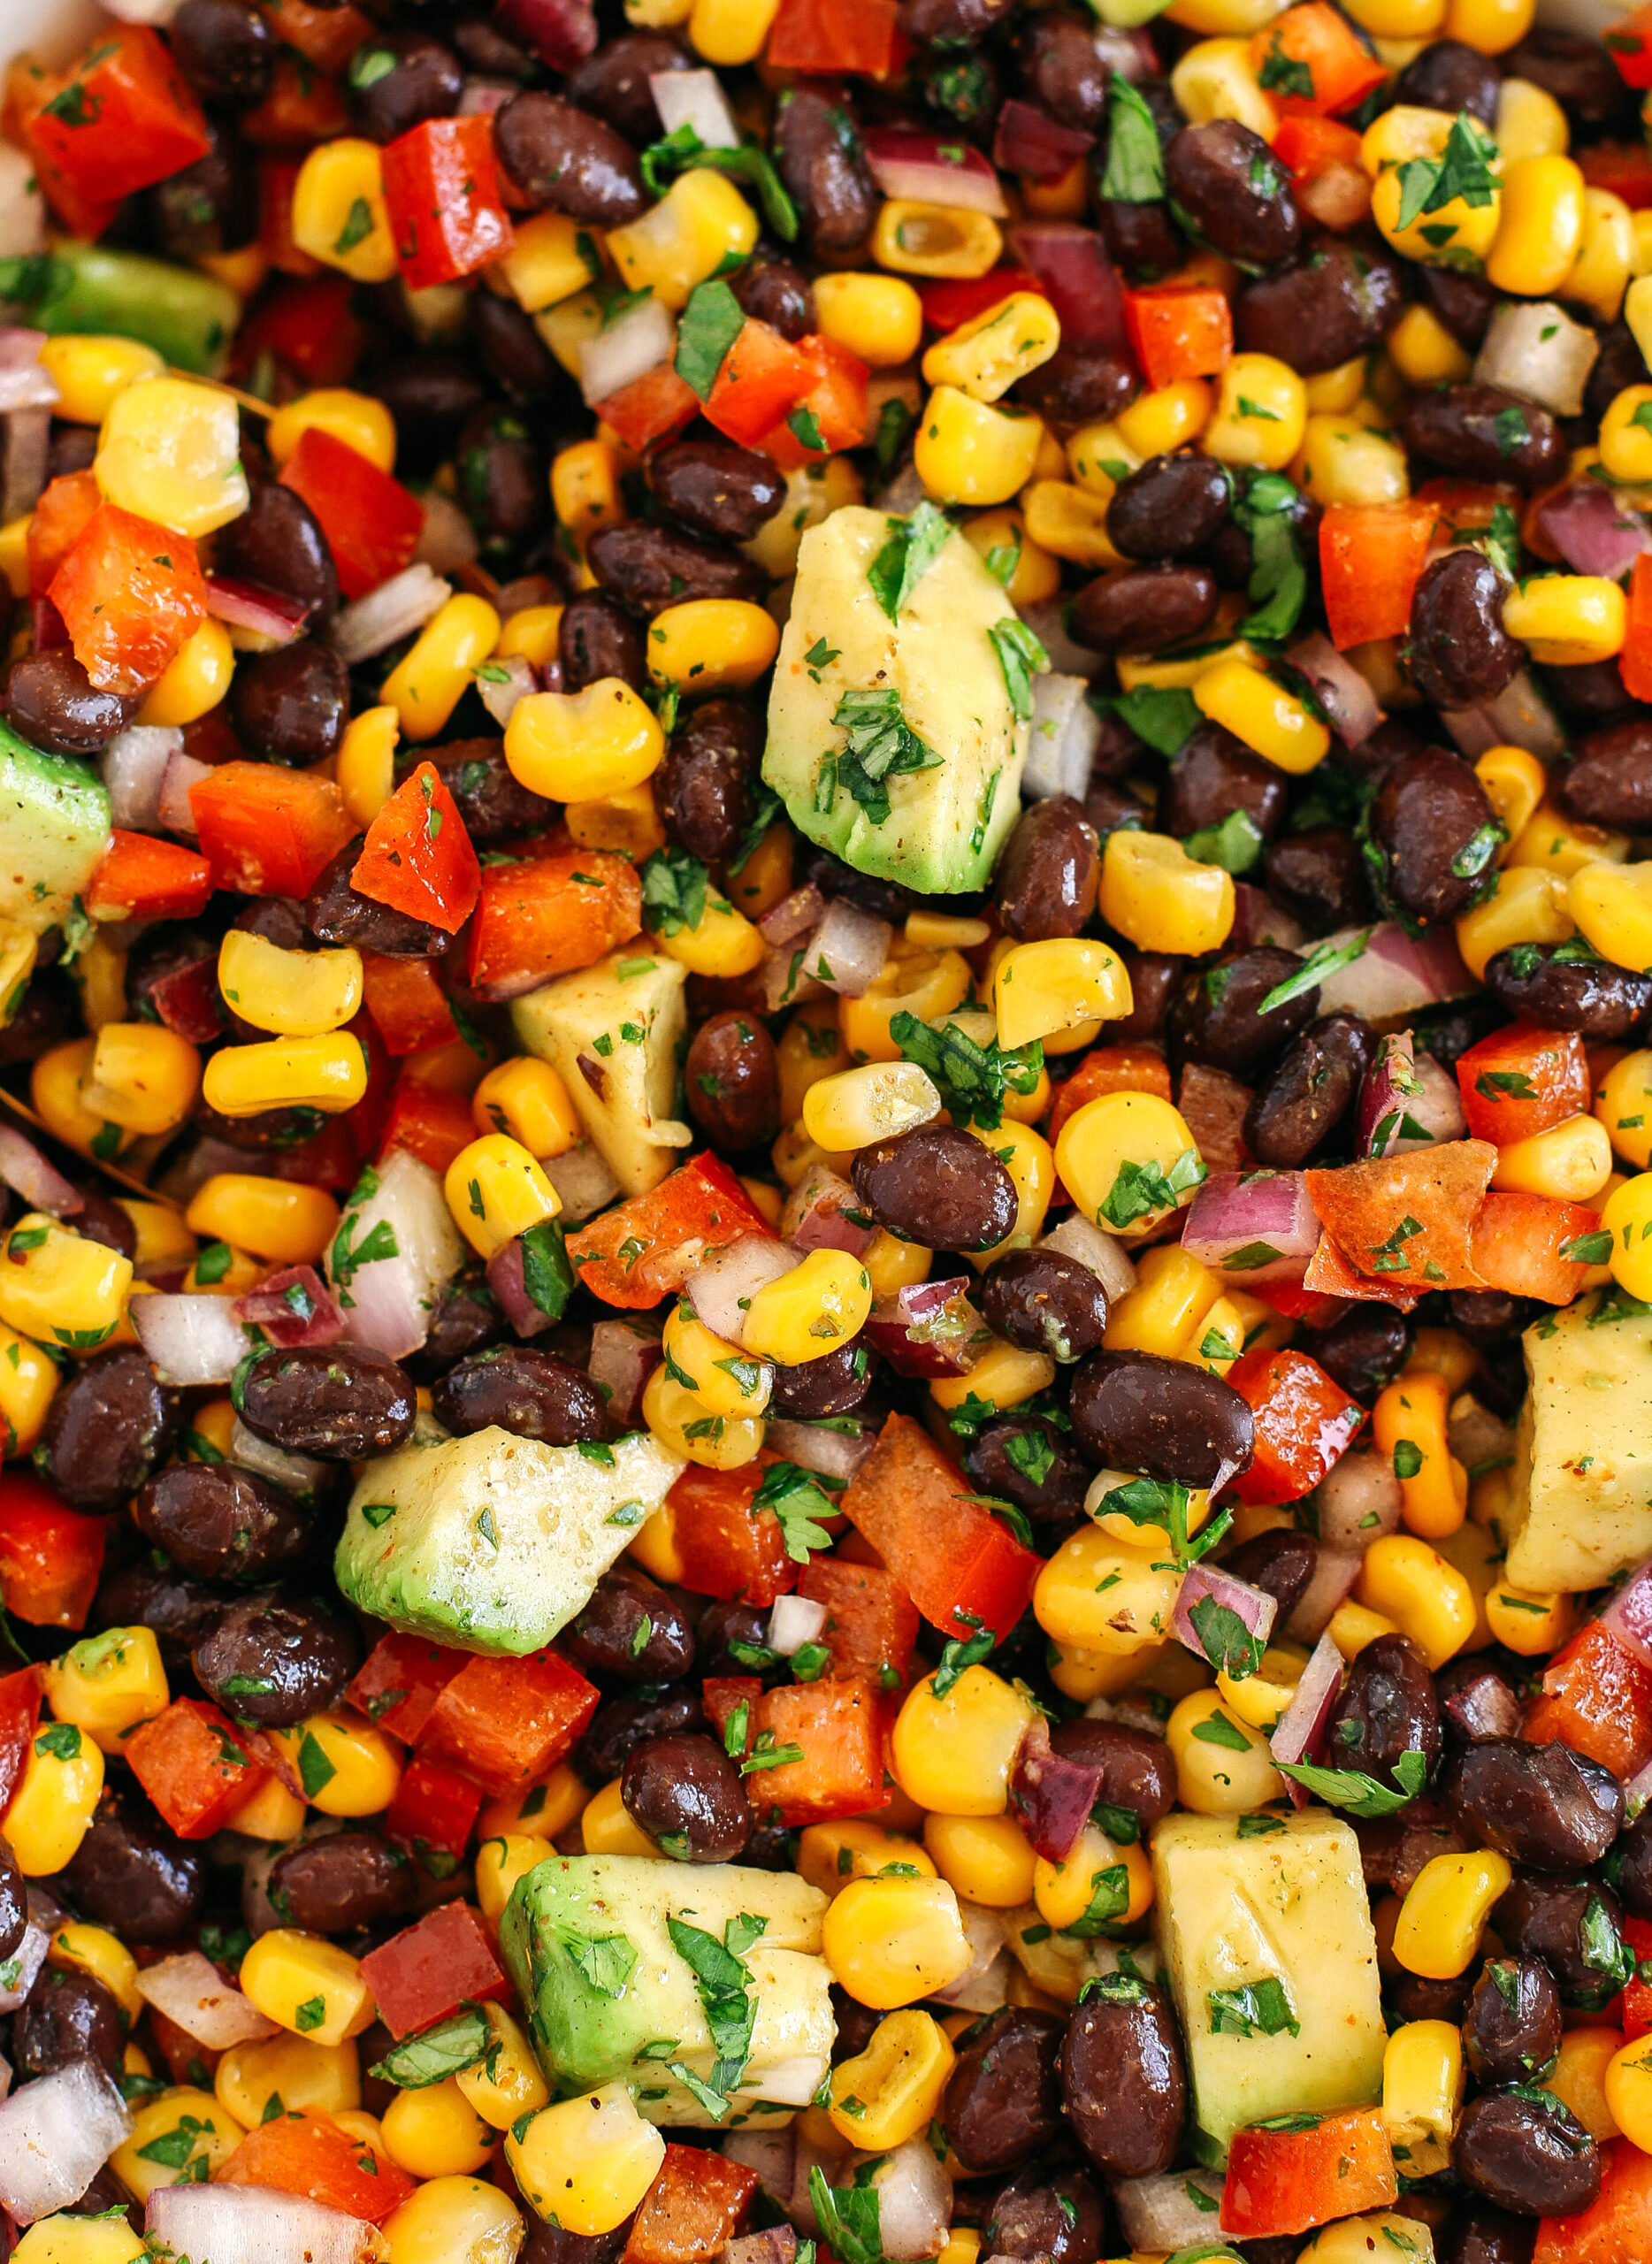 This Black Bean and Corn Salad is loaded with crisp veggies, delicious spices and fresh cilantro, all tossed together in a zesty lime dressing making it the perfect summer side dish or dip!